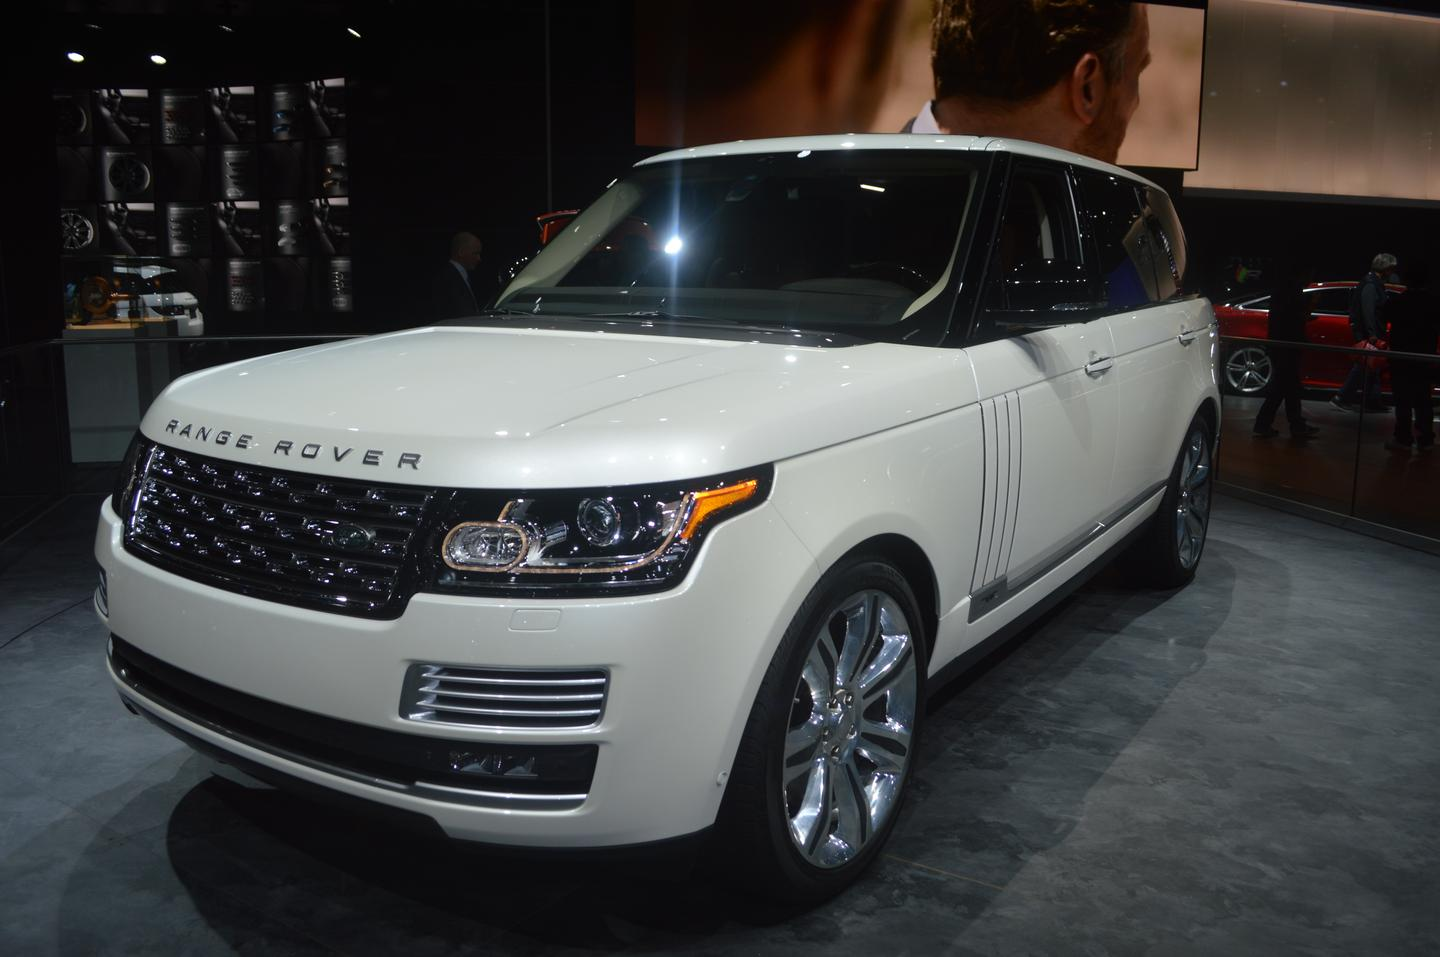 The Range Rover LWB Autobiography Black Edition made its public debut in Los Angeles